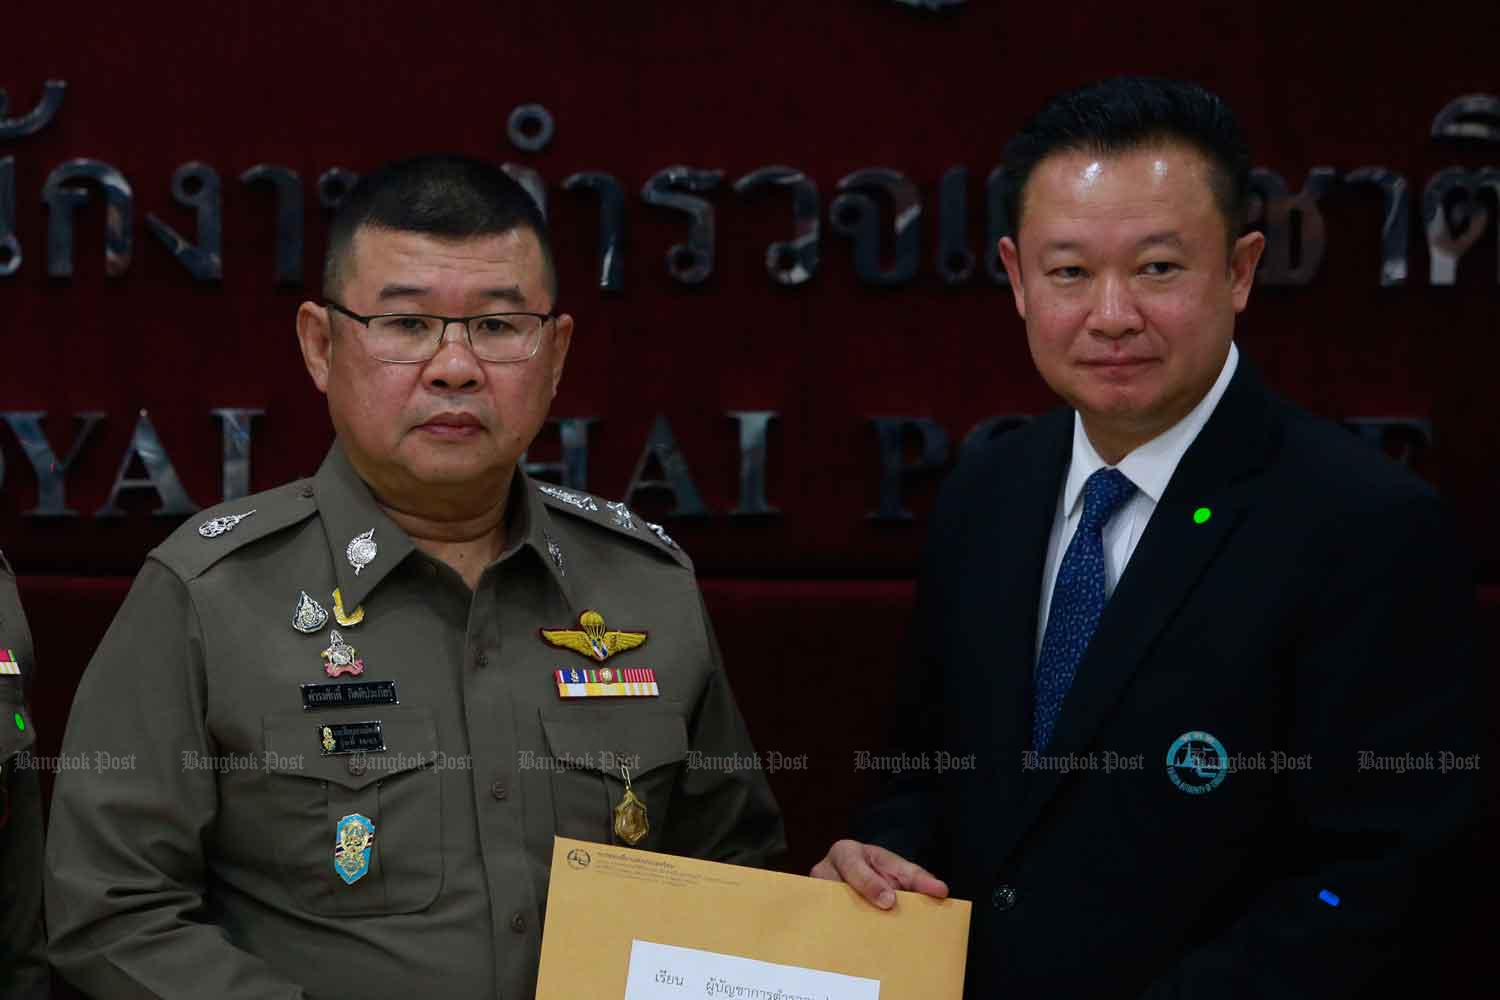 Tourism Authority of Thailand governor Yuthasak Supasorn, right, files a complaint with deputy national police chief Pol Gen Damrongsak Kittiprapat at the Royal Thai Police Office in Bangkok on Wednesday. (Photo: Arnun Chonmahatrakool)